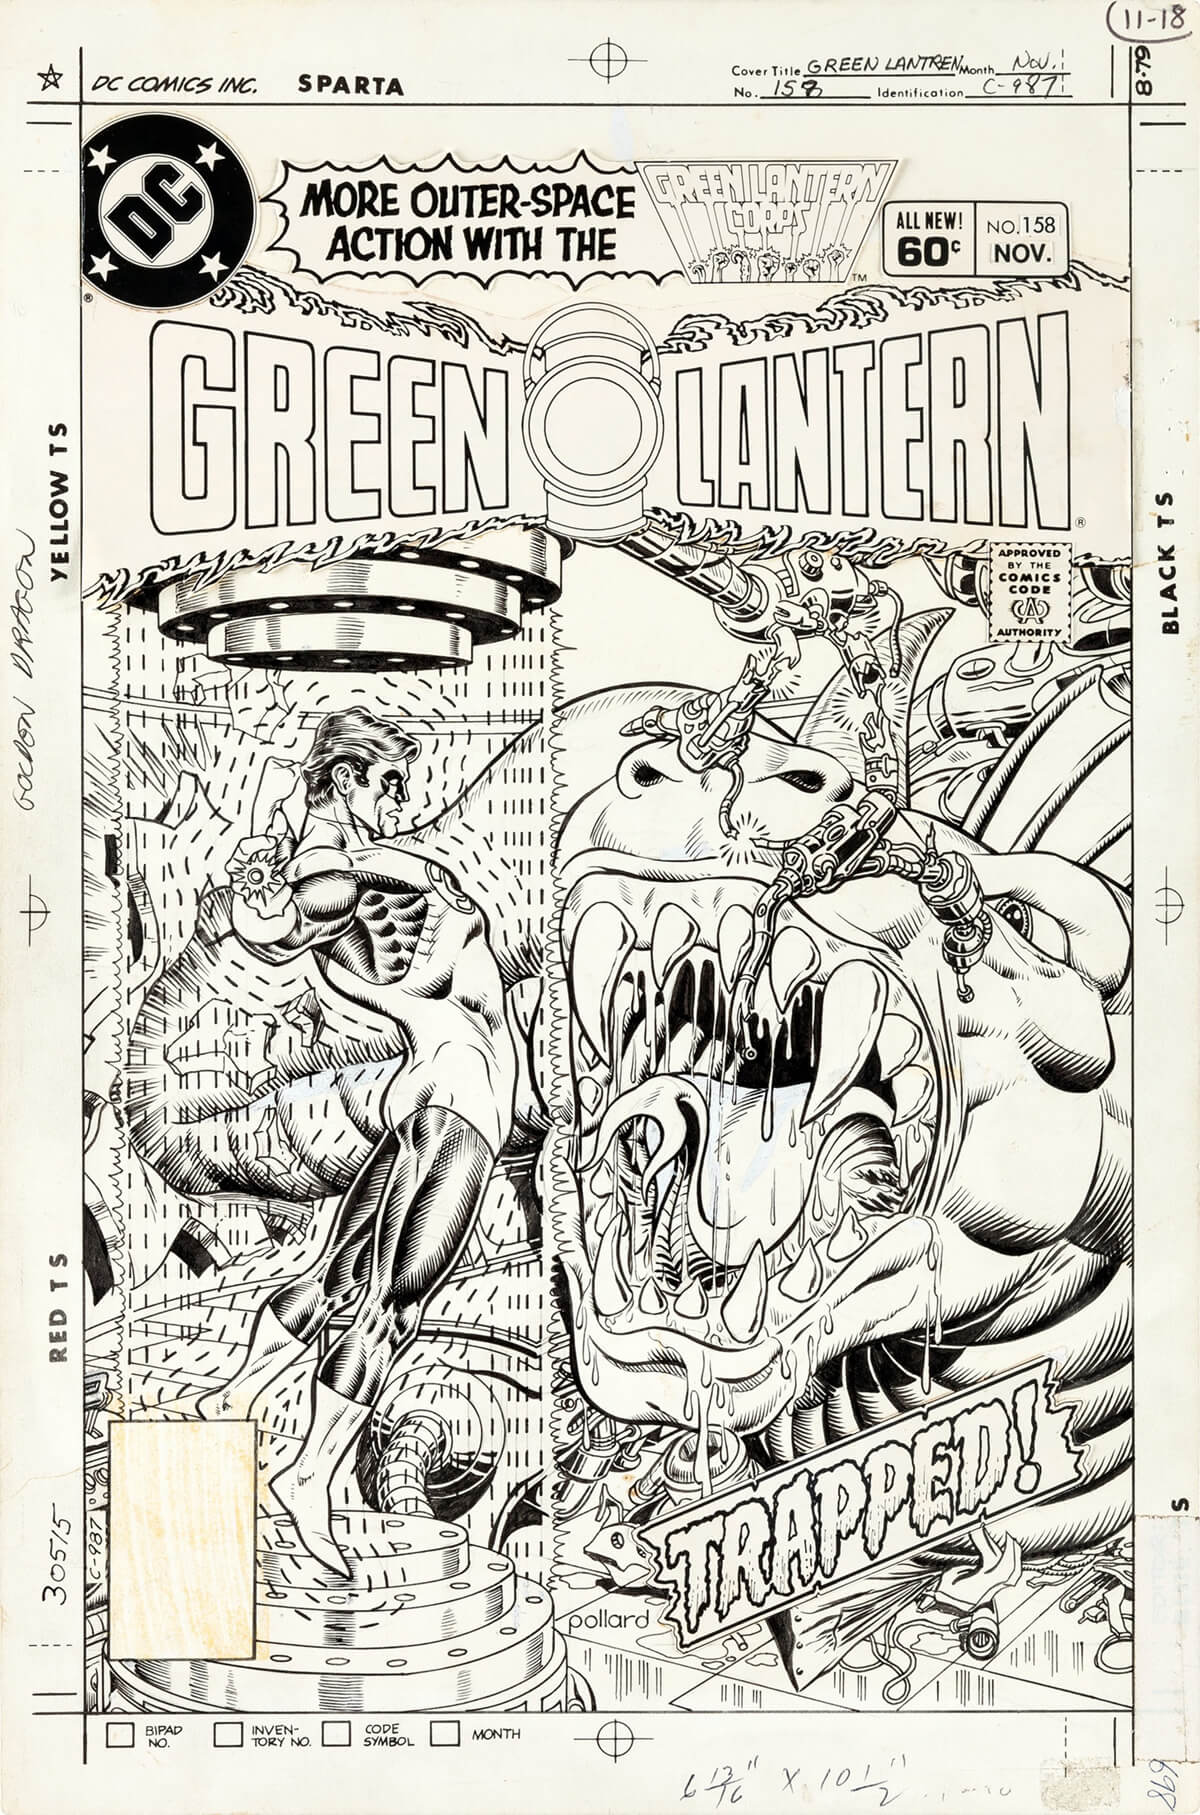 Green Lantern 158 Cover by Keith Pollard